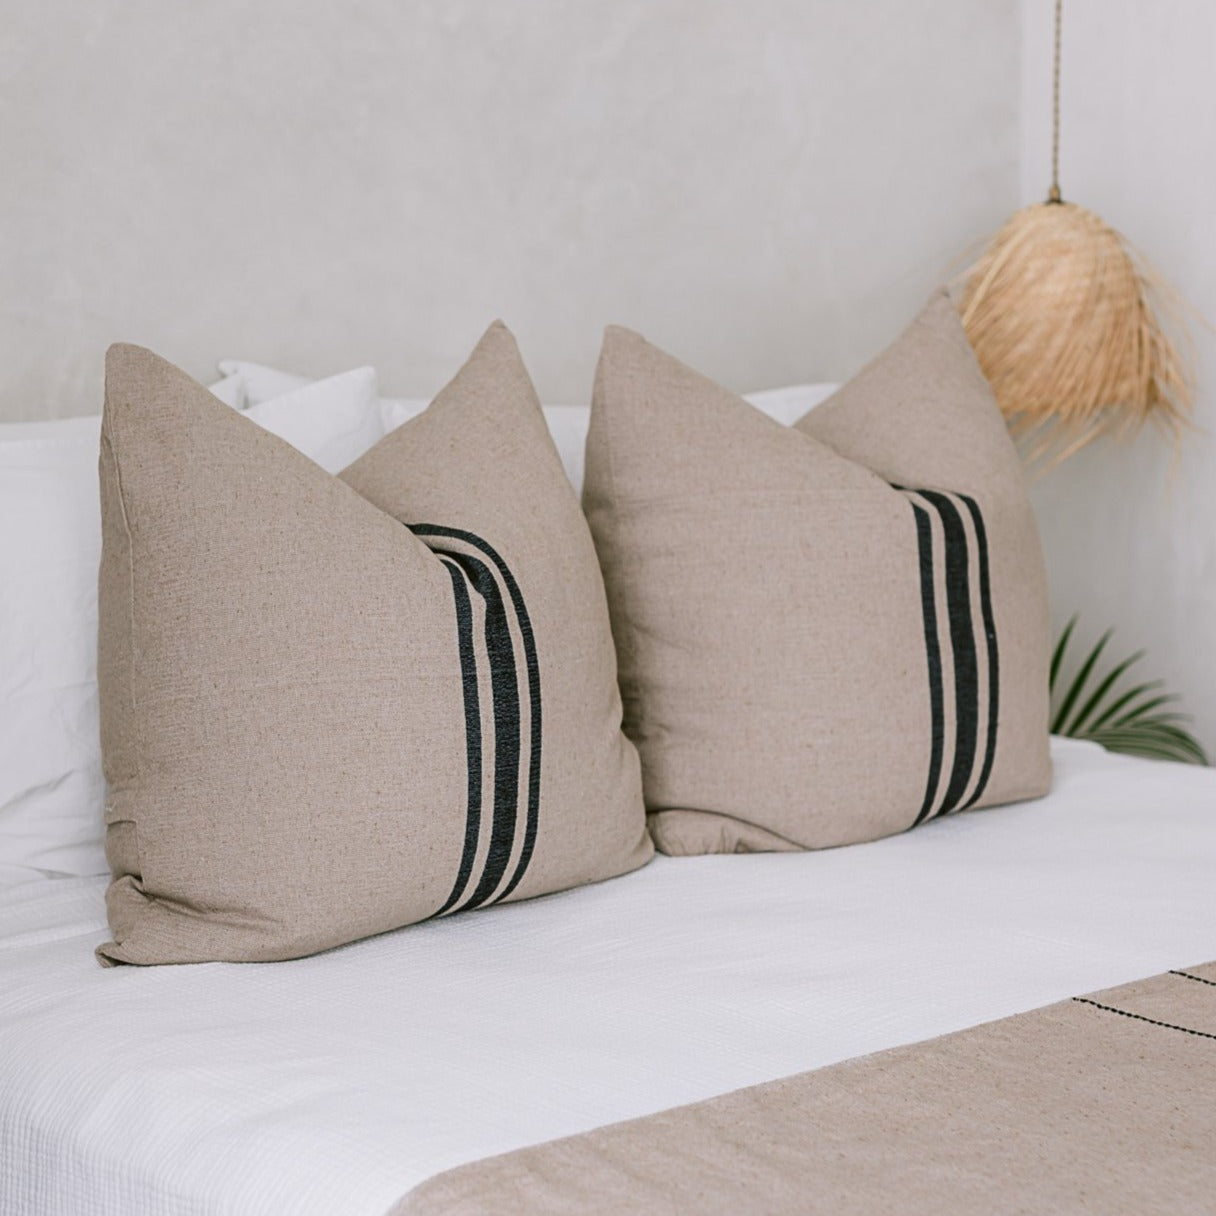 A set of cotton euro shams on a white bed with palm leaf pendant lights.